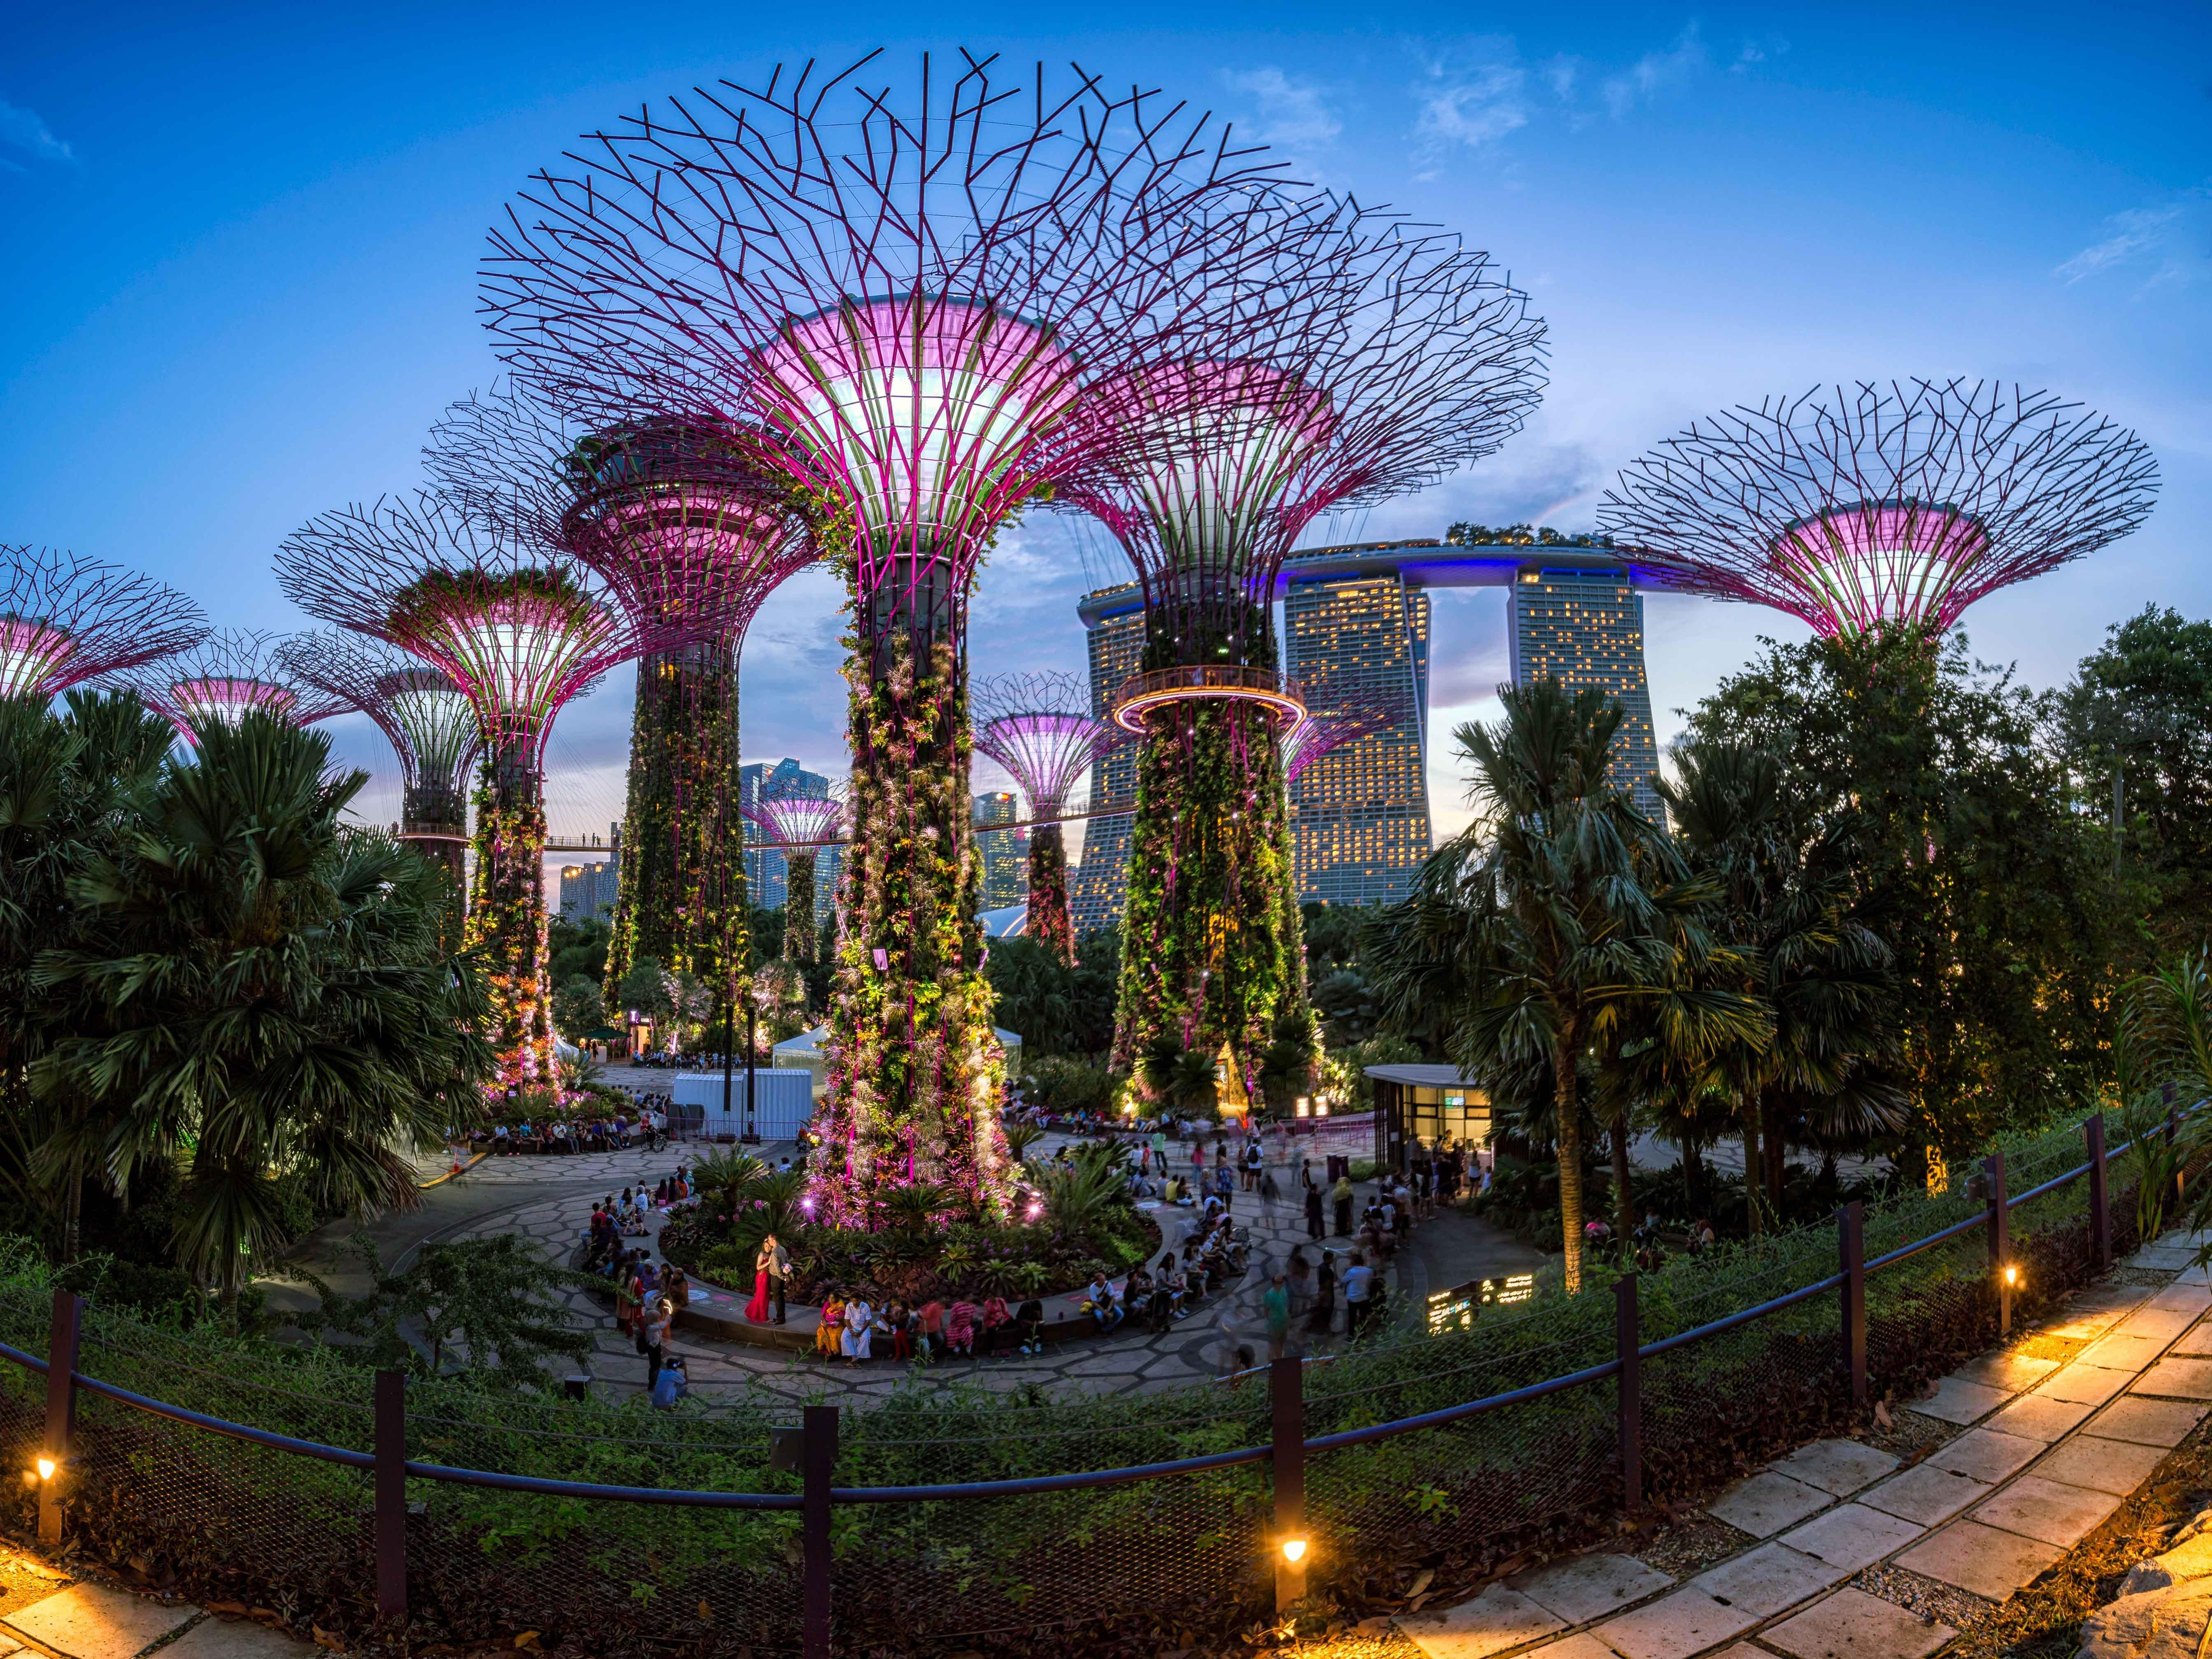 Panorama Of The Gardens By The Bay In Singapore Traveling Singapore Garden Gardens By The Bay Fun Website Design